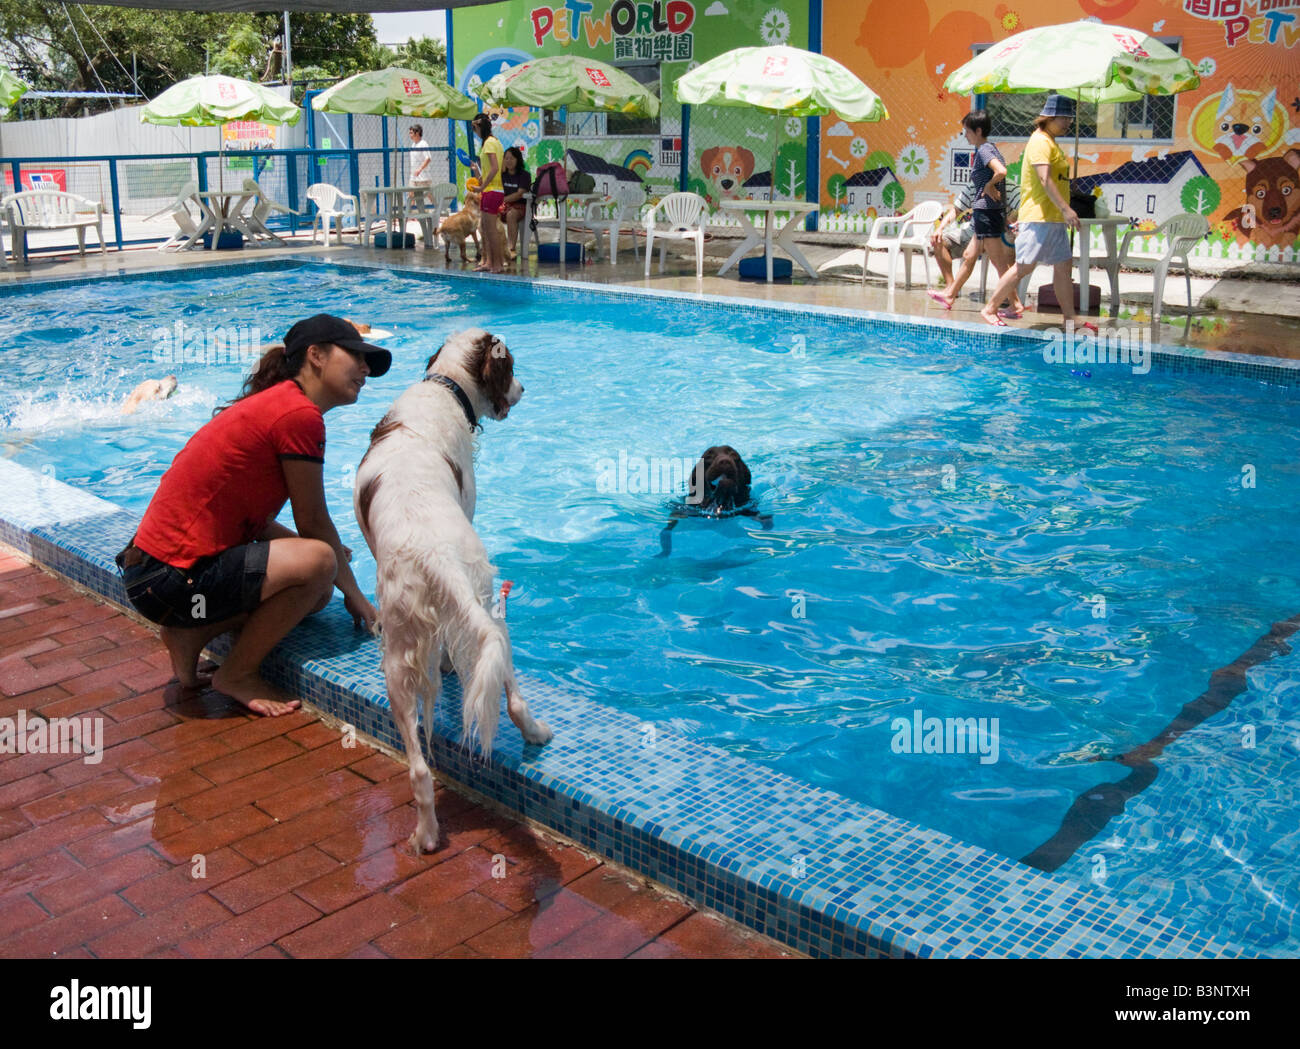 A swimming pool for dogs only at Petworld, an animal ...